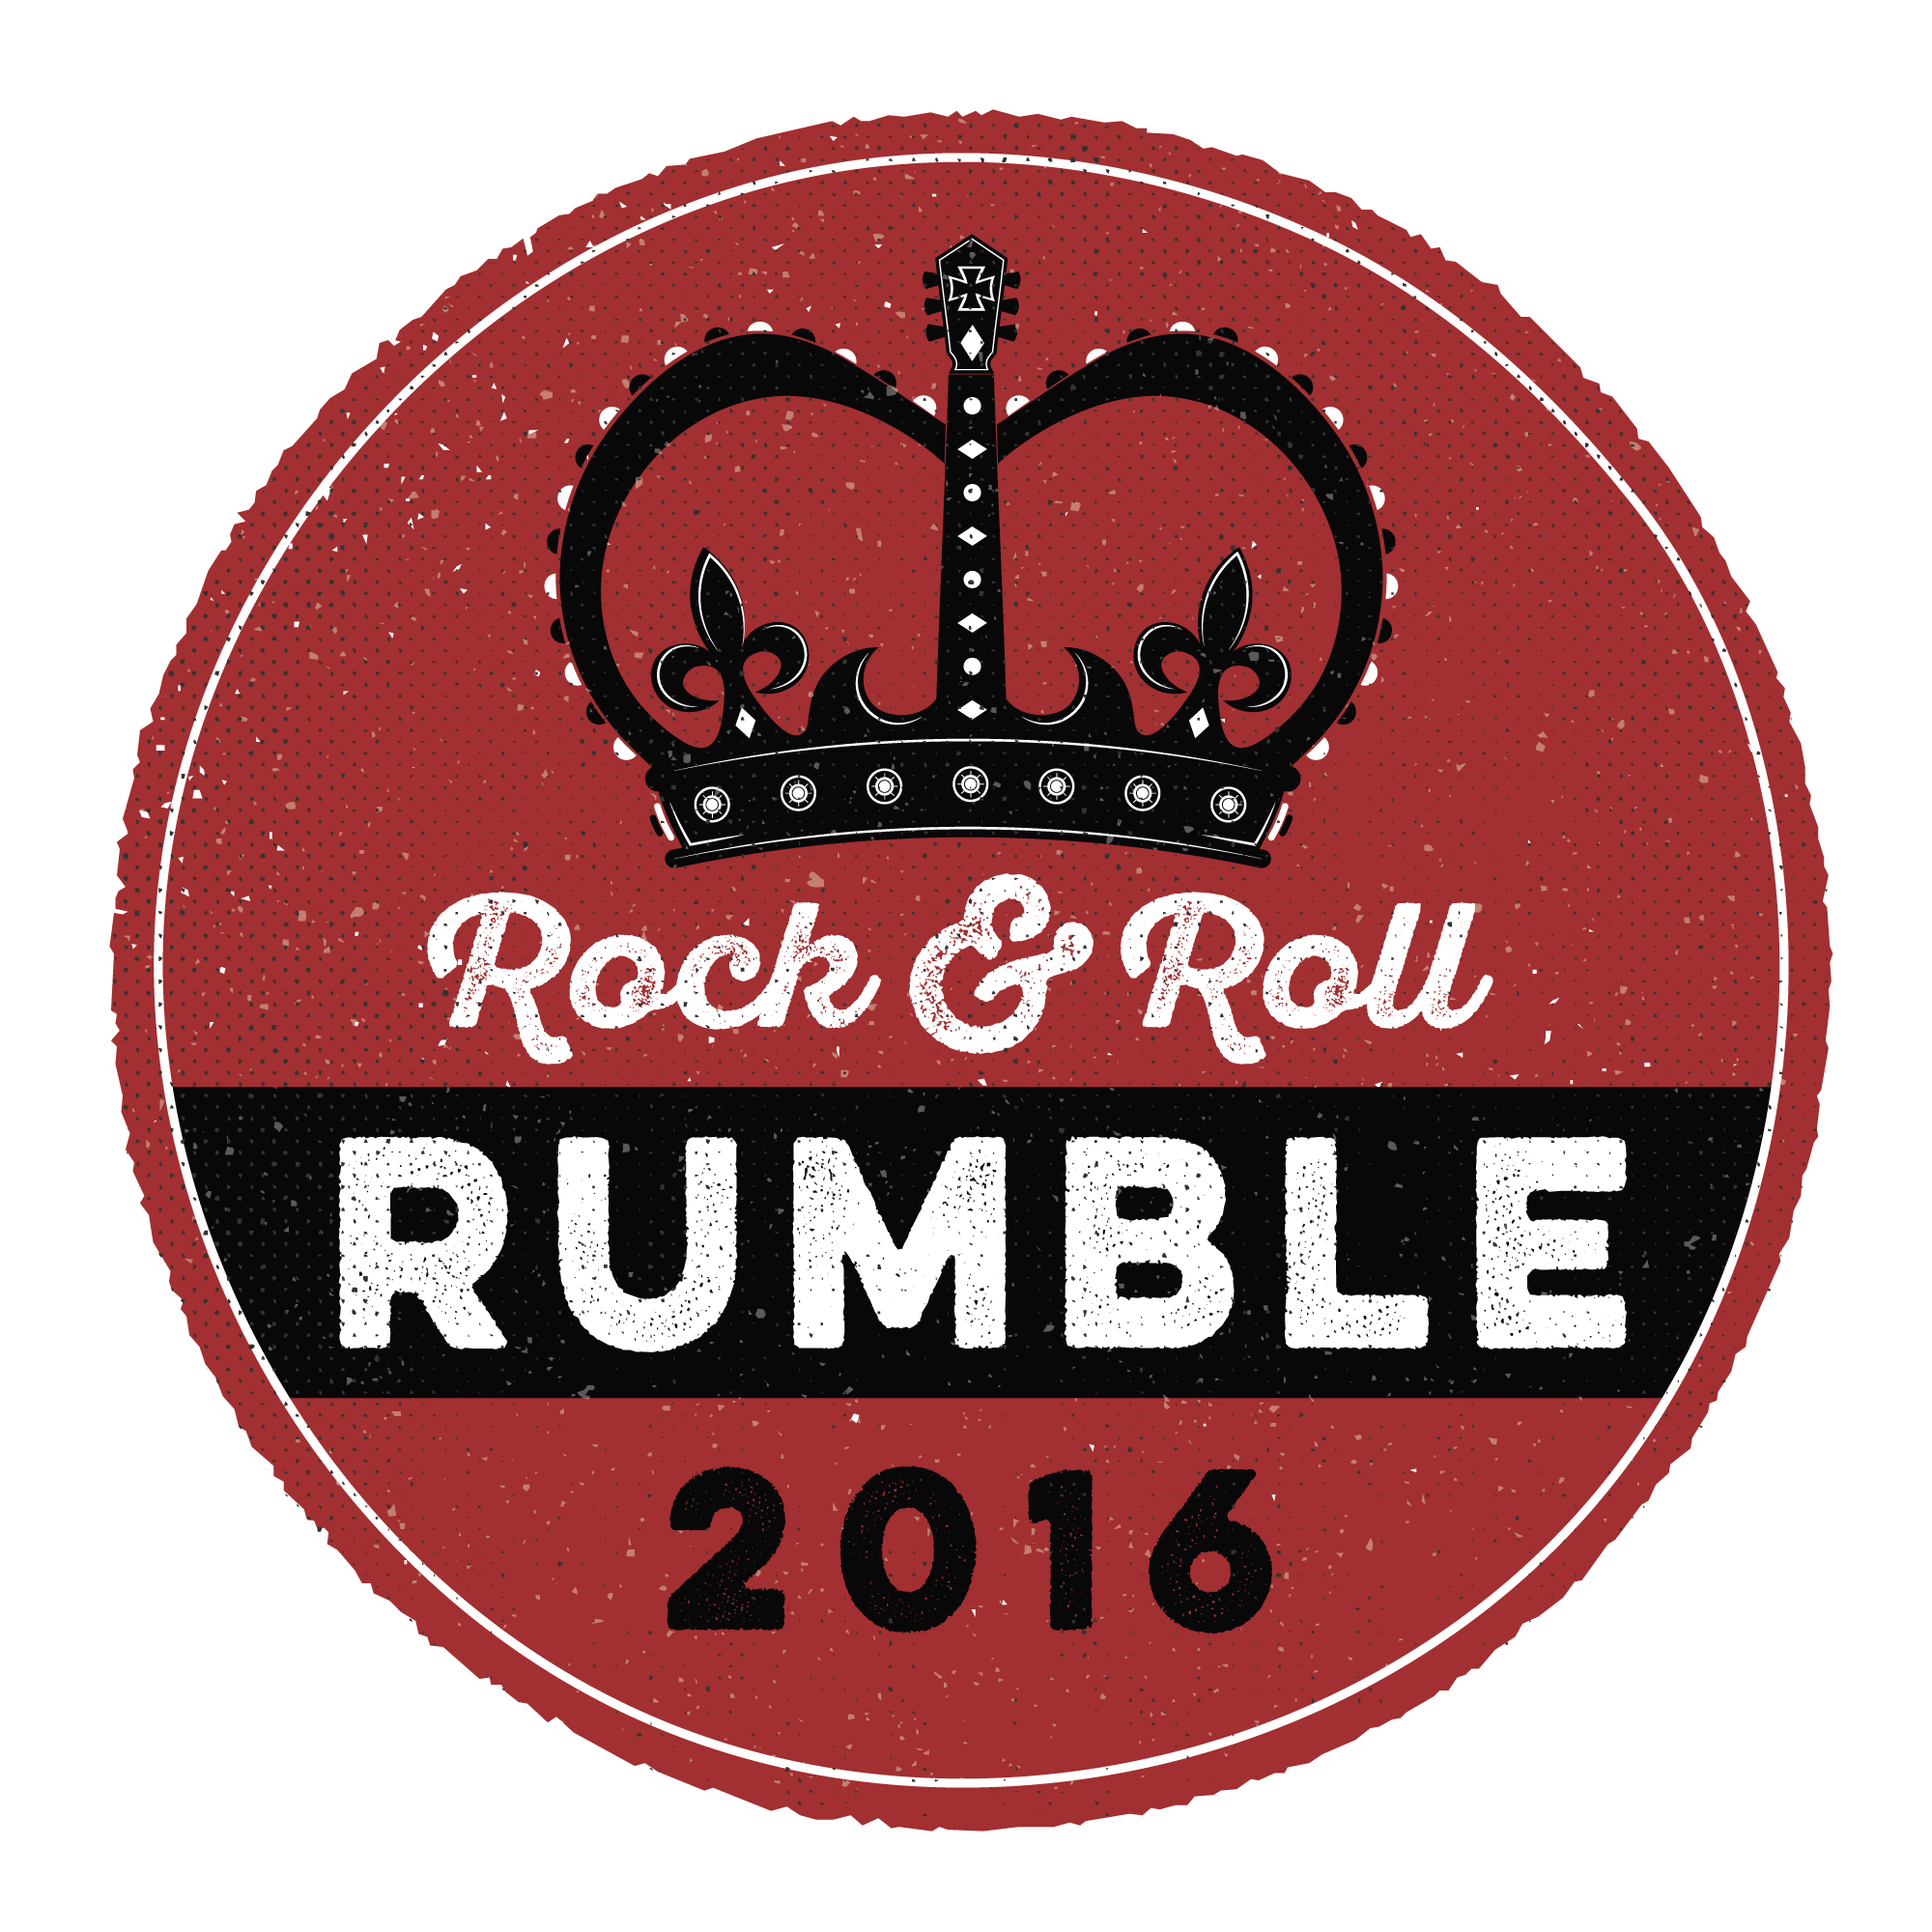 2016 Rock & Roll Rumble